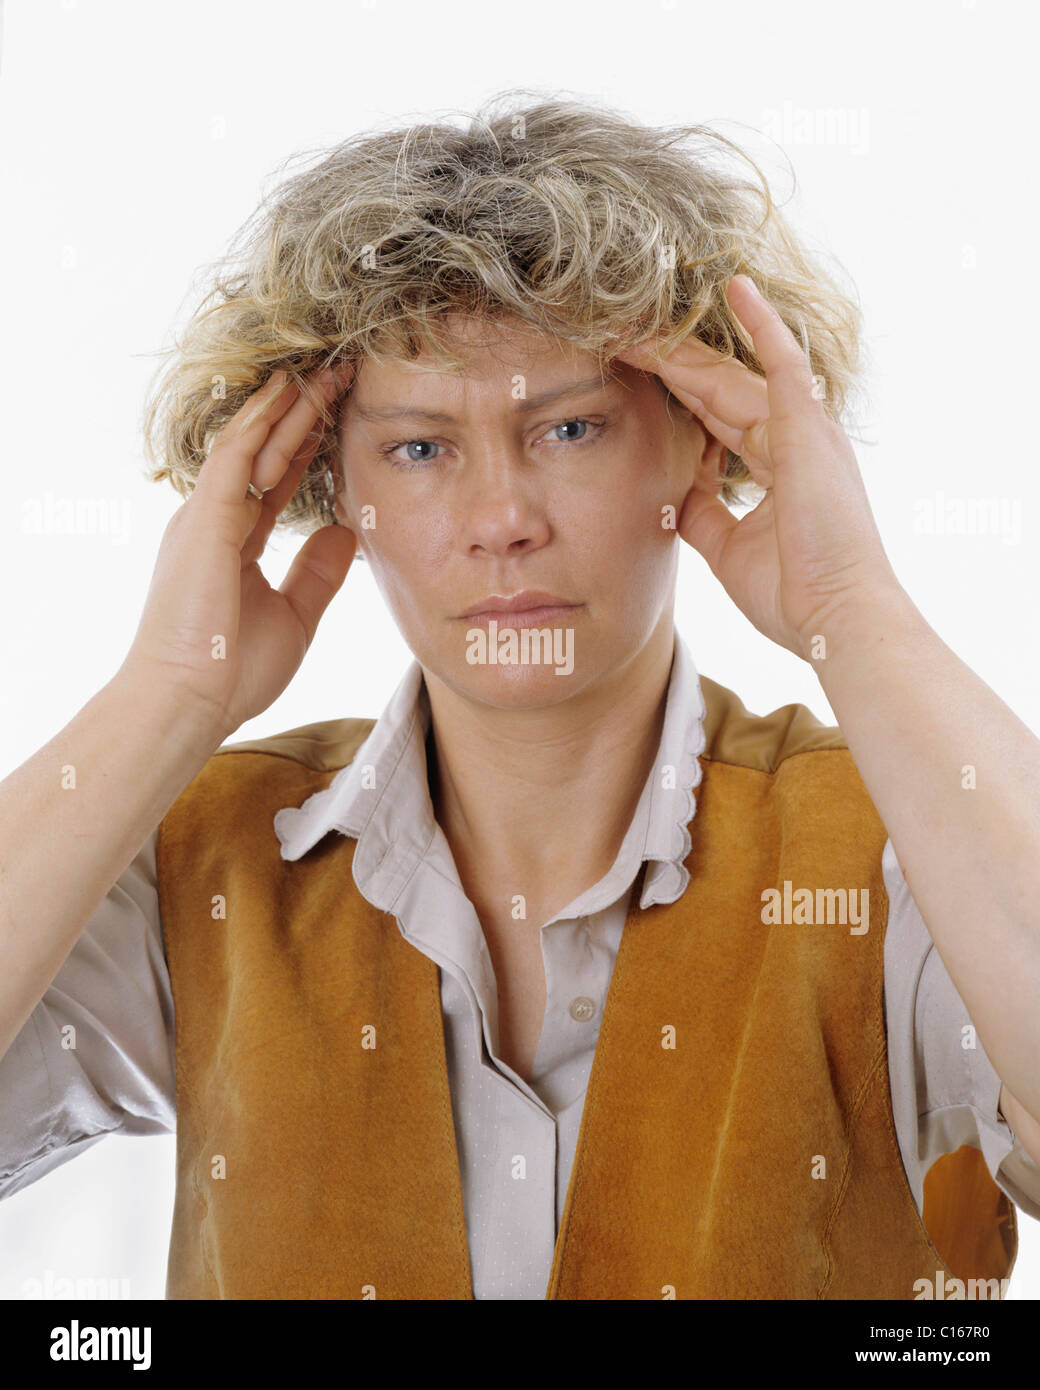 A blond woman is holding her head with both hands, intense headache, migraine, overload - Stock Image